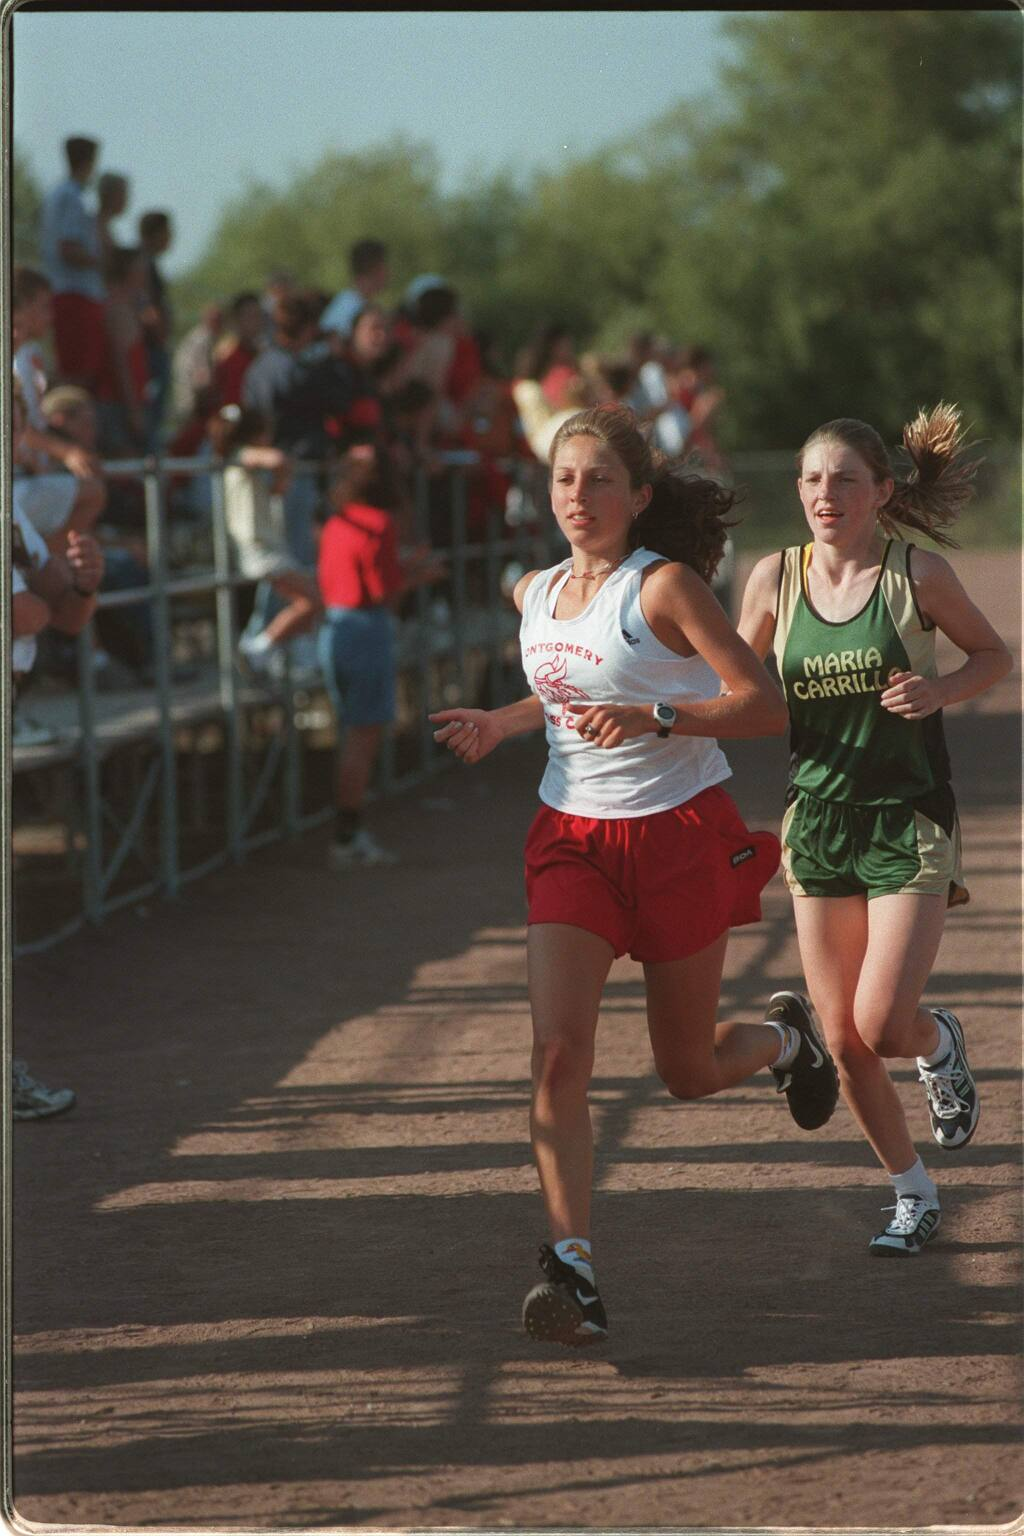 Montgomery's Sara Bei leads Maria Carrillo's Jenny Aldridge out of the stadium at Rancho Cotate High at the start of the cross country race; they finished in the same order. (JEFF KAN LEE/ PD)